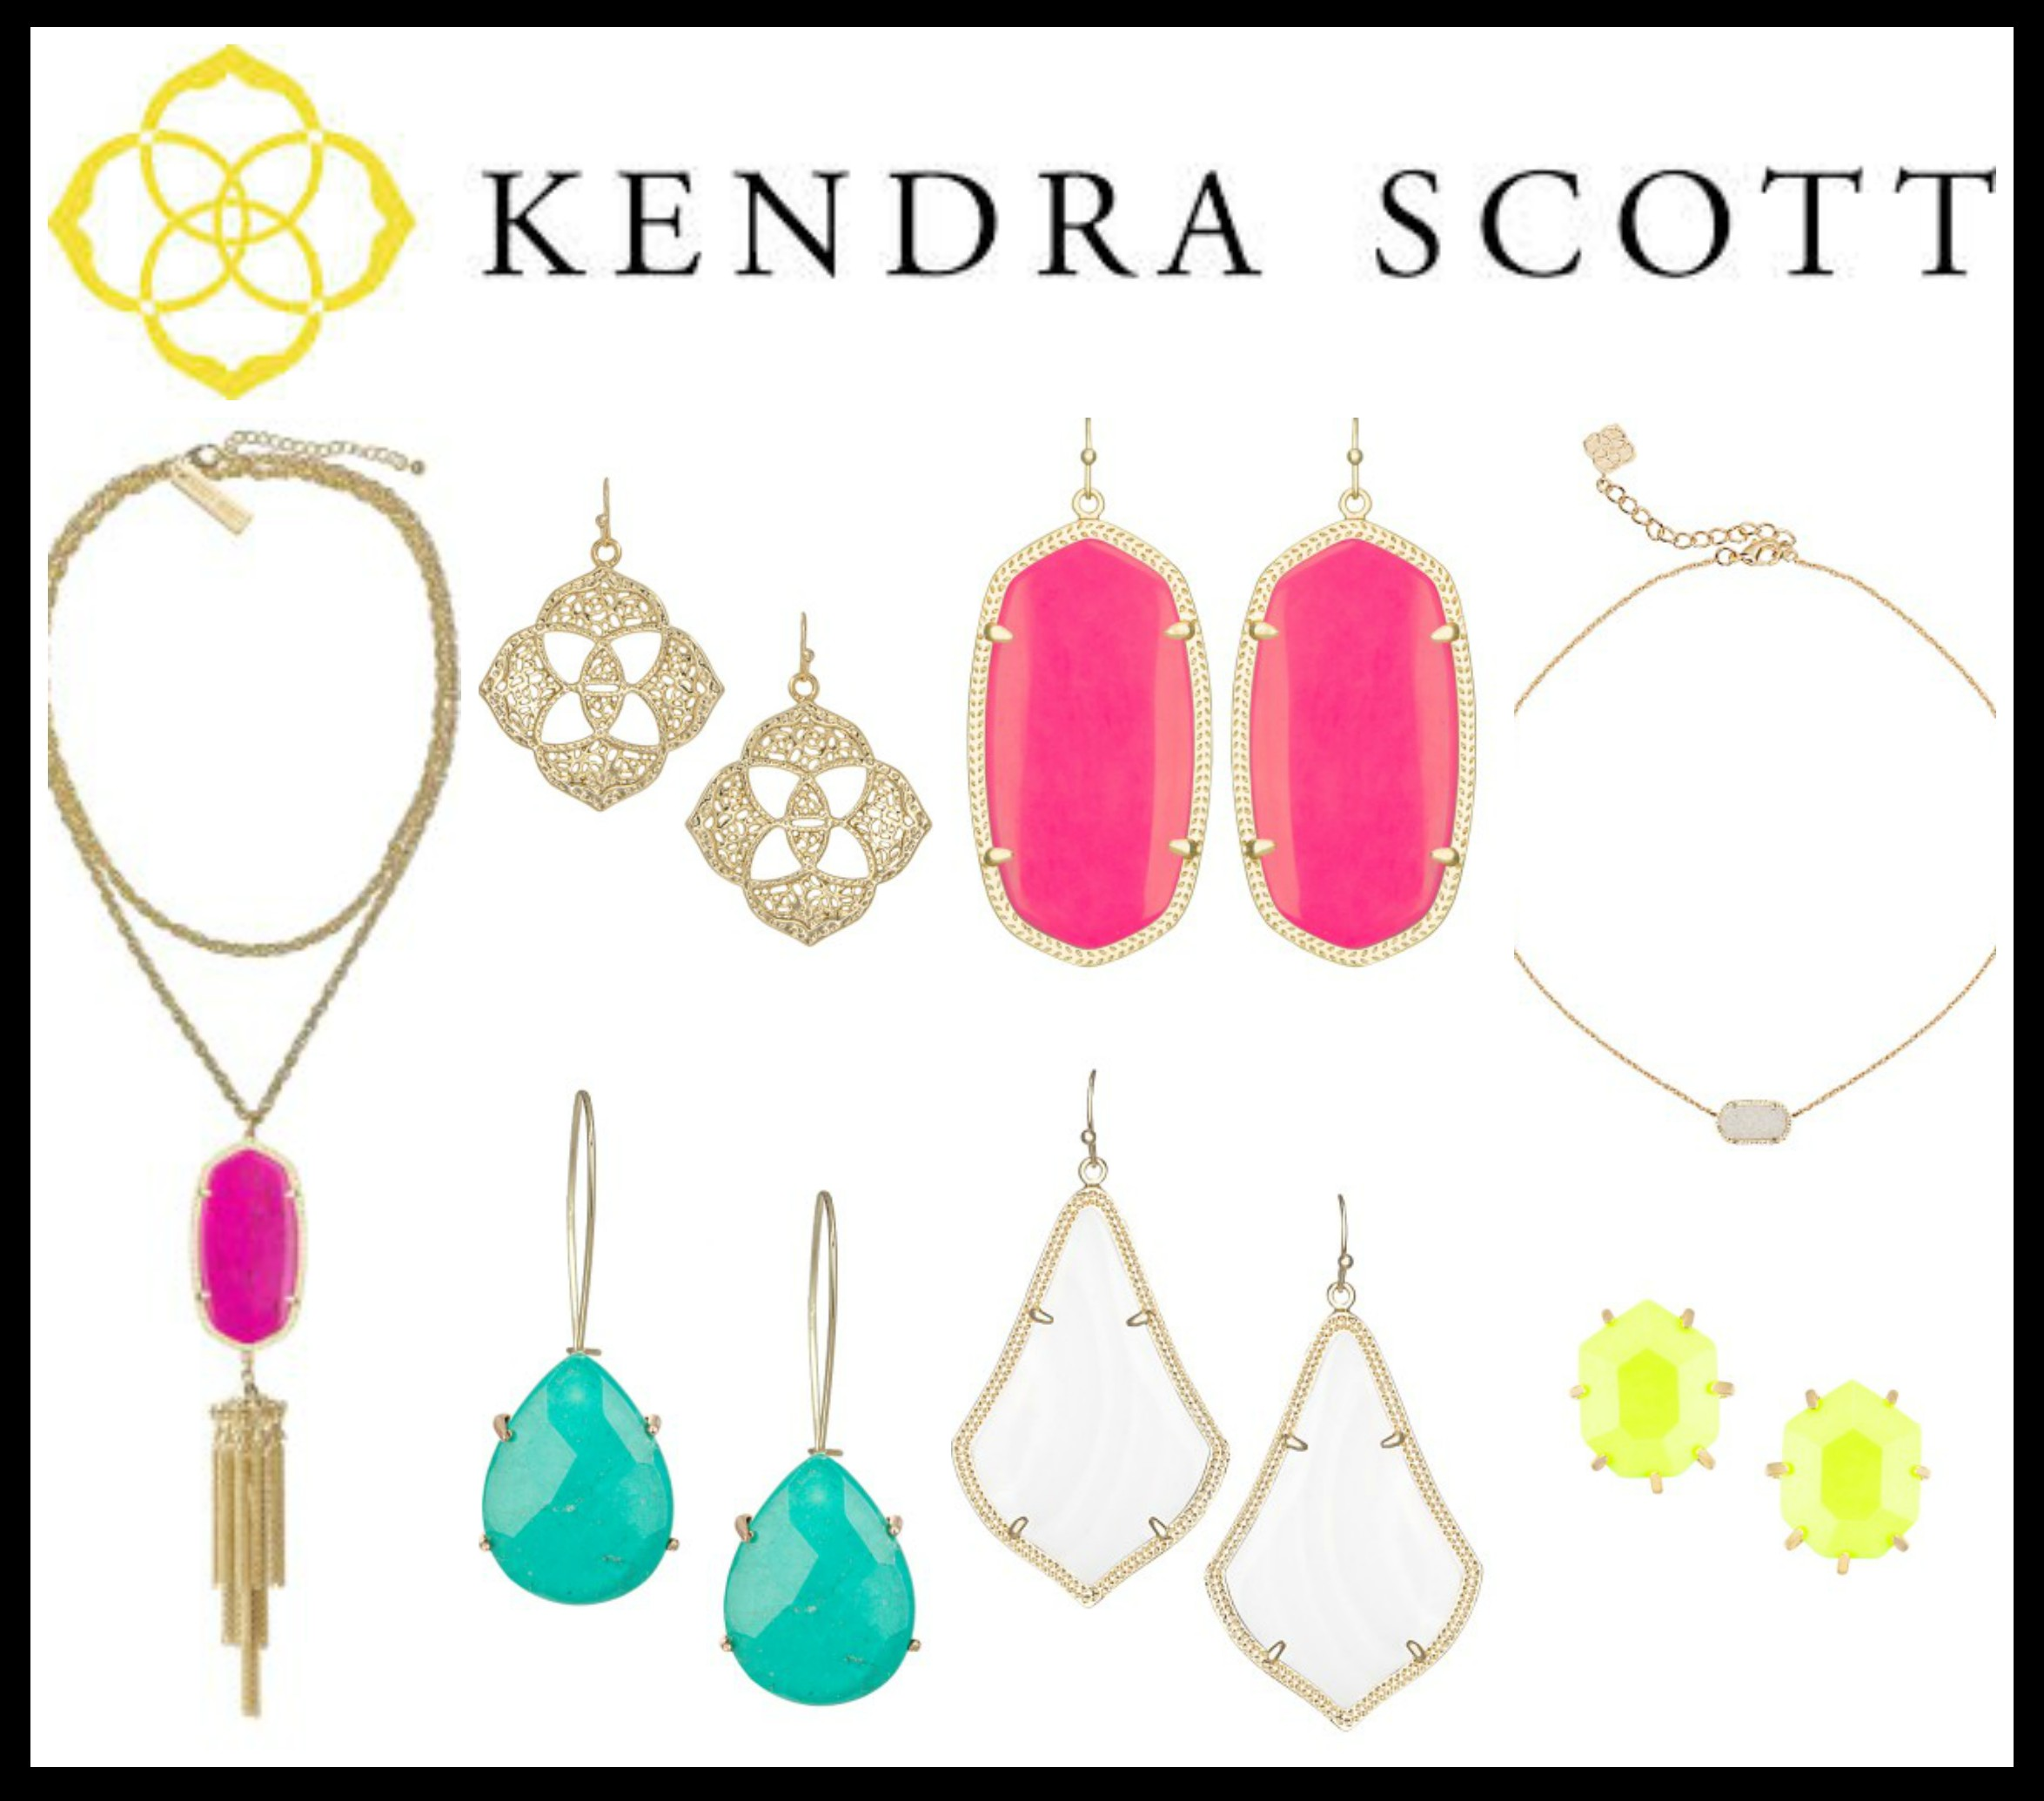 Sheaffer Told Me To Kendra Scott.  I just can't quit her.  AND I'VE GOT ANOTHER Kendra Scott CODE!